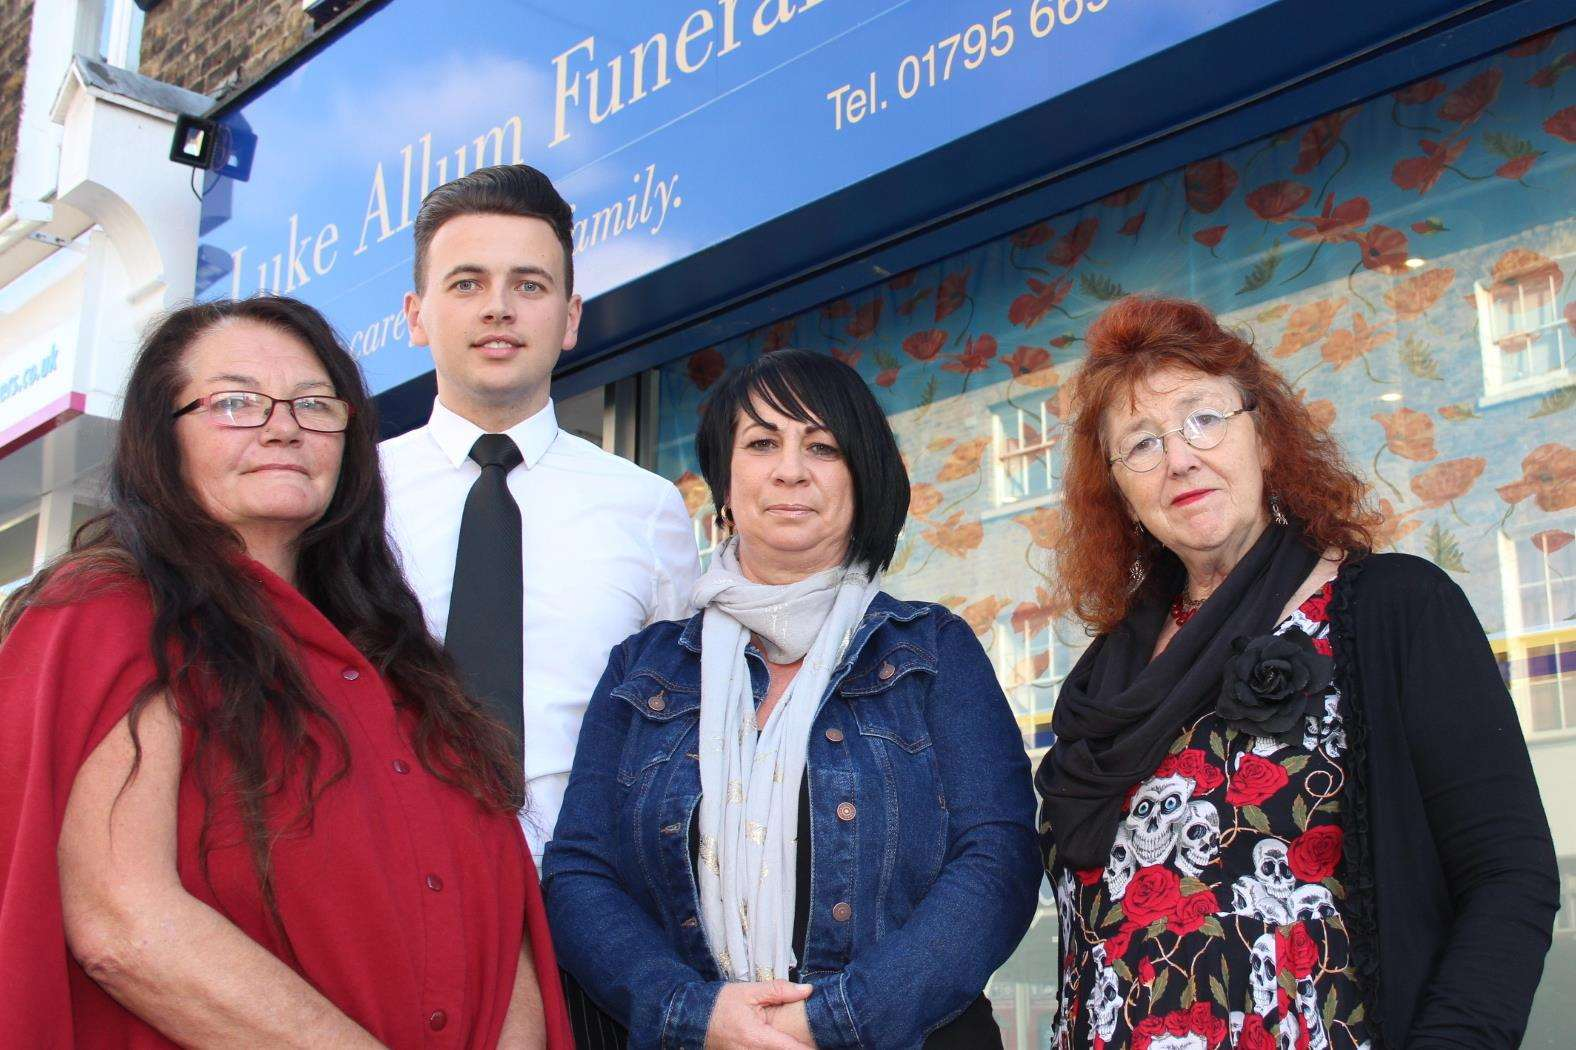 Sheppey funeral director Luke Allum has come to the rescue, pictured with Anne McManus' friend Vivienne Hudson, left, neighbour Chris Reed, right, and Tracy Jackson from Seabreeze caravan park